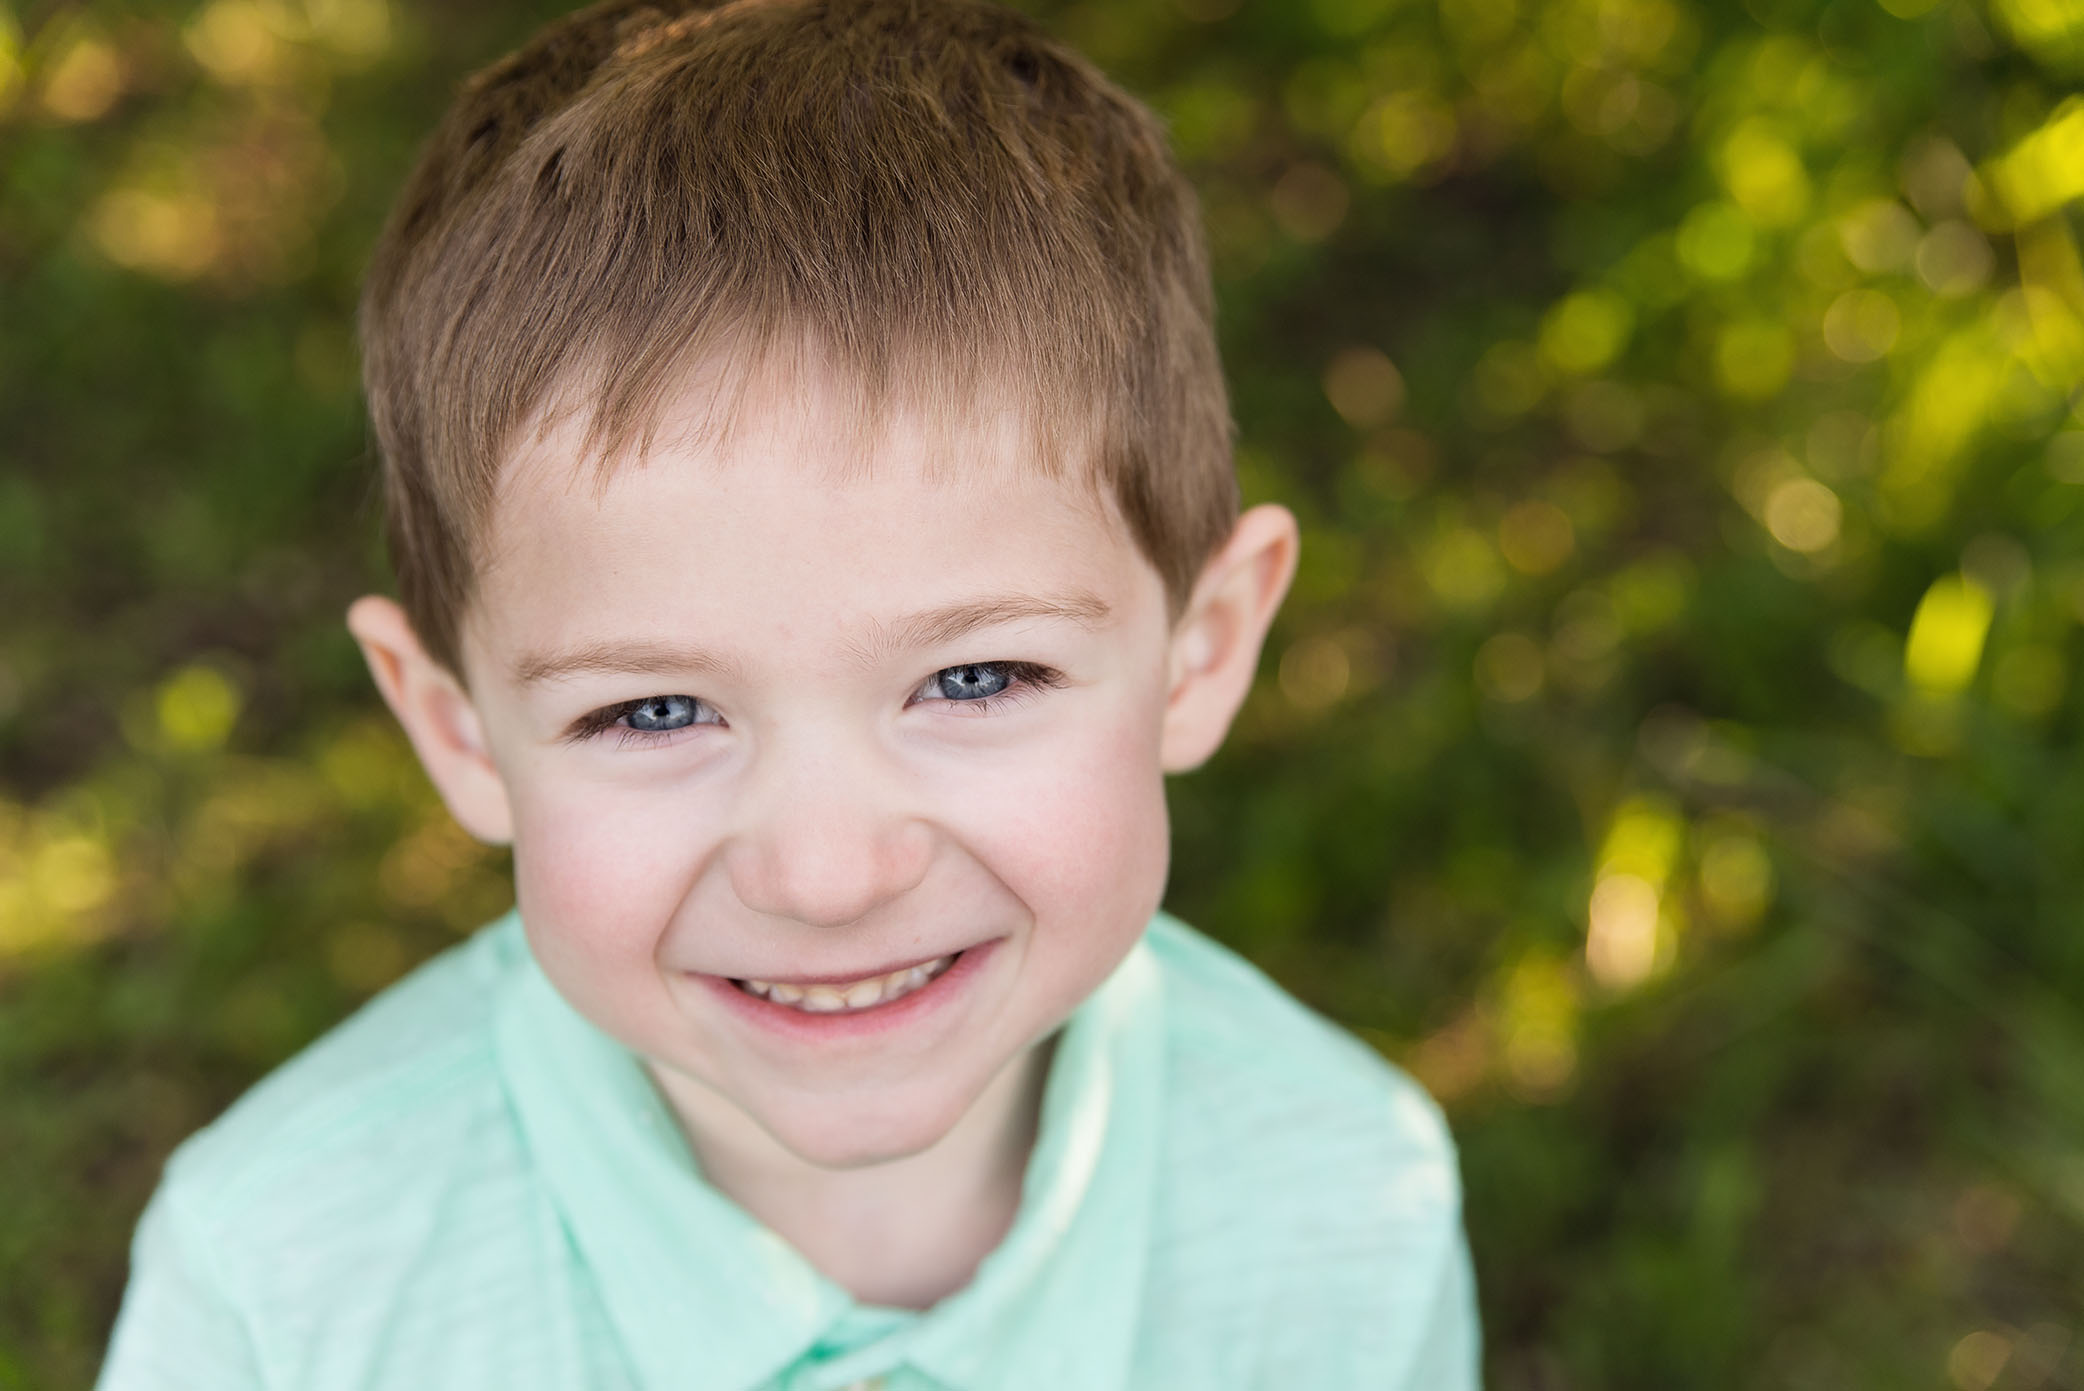 A cute, adorable boy smiles in Cedar Rapids for his photography session